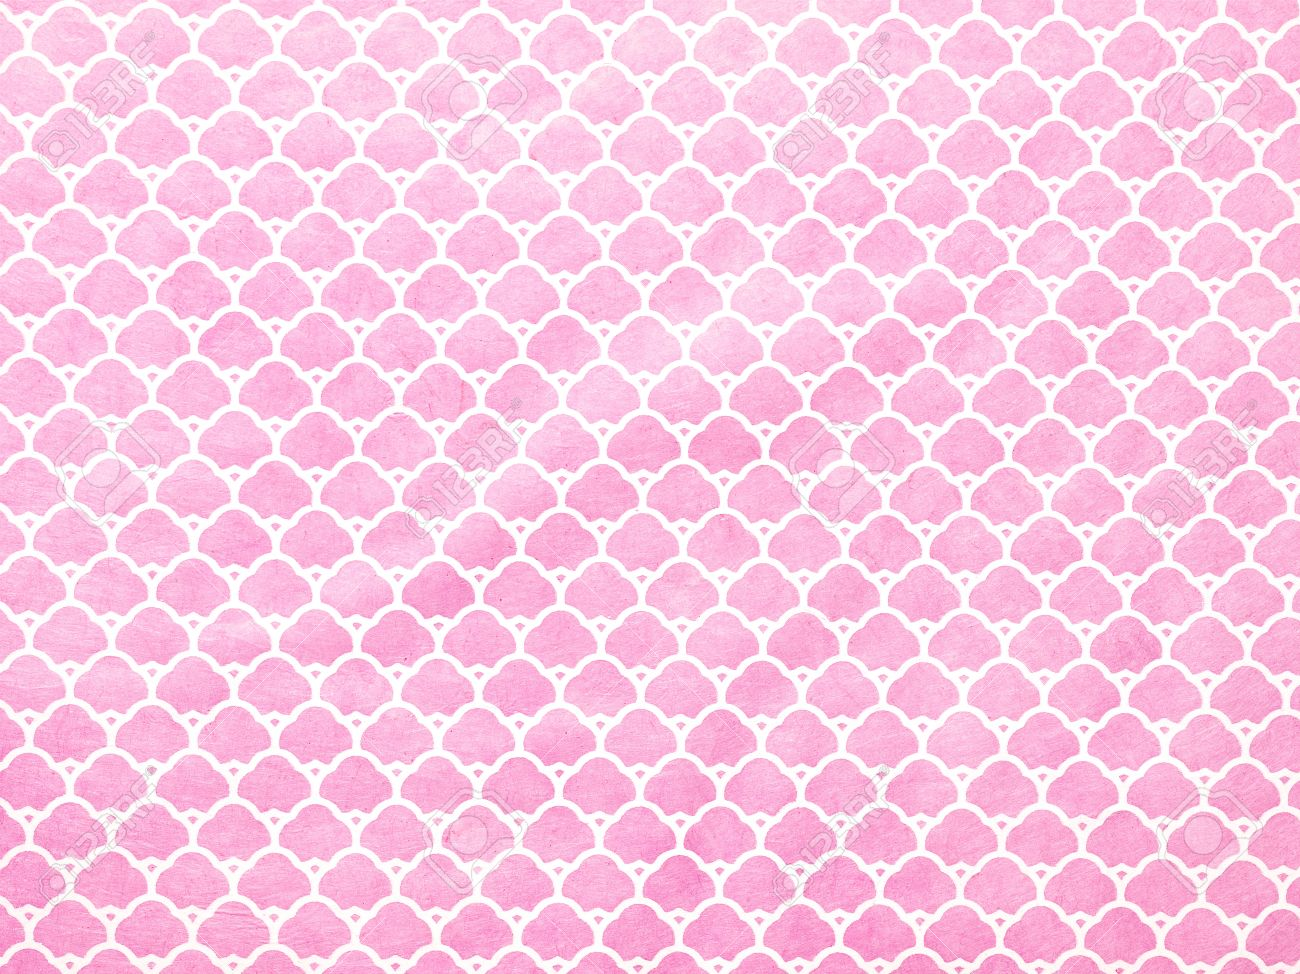 a baby pink color design wallpaper stock photo, picture and royalty